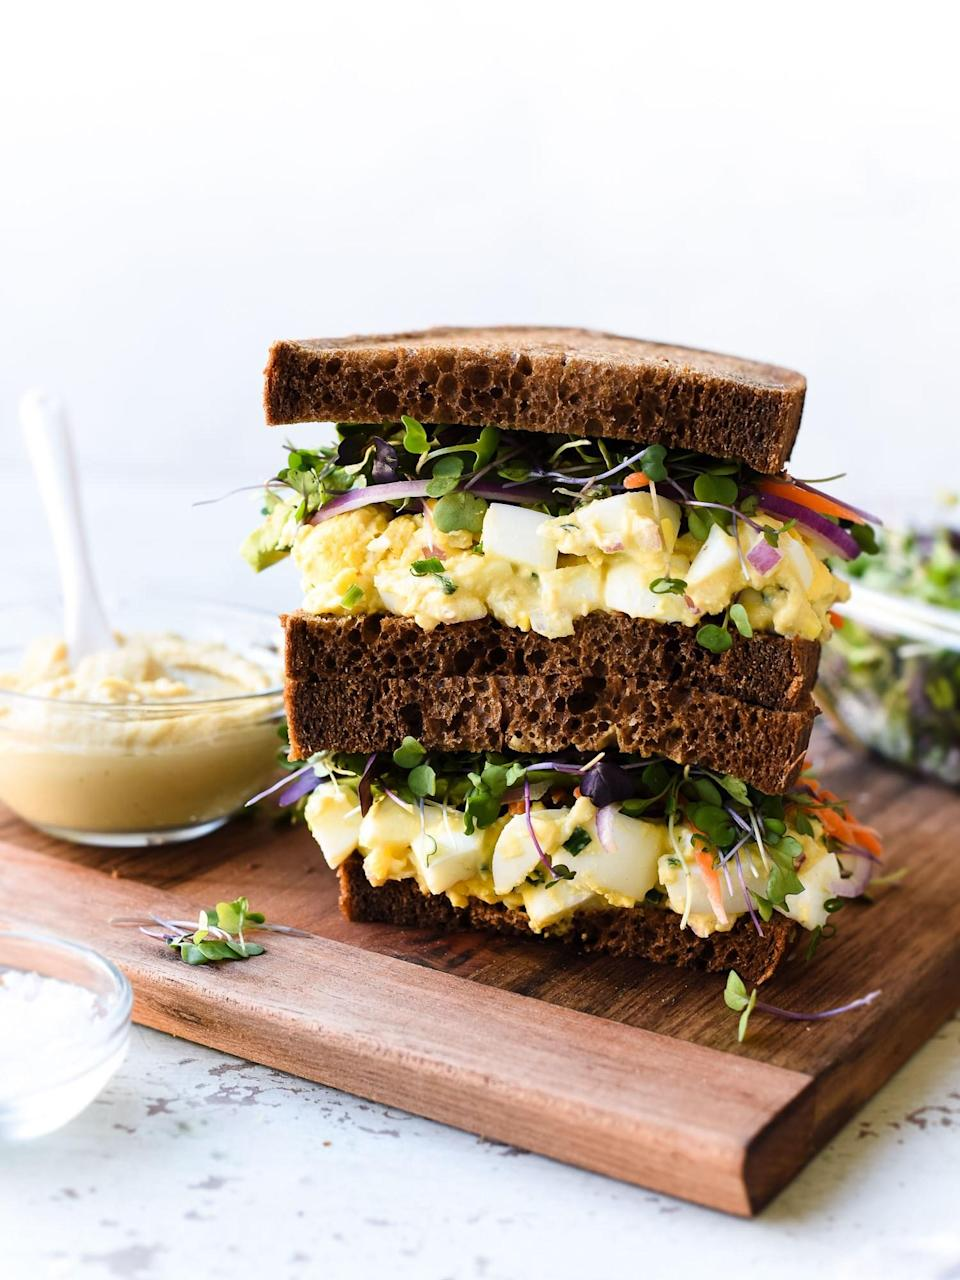 """<p>This egg salad is lighter than the traditional mayo-based version, thanks to the hummus and tahini swap. Get the recipe <a href=""""http://kitchenconfidante.com/hummus-and-tahini-egg-salad-recipe?mbid=synd_yahoofood"""" rel=""""nofollow noopener"""" target=""""_blank"""" data-ylk=""""slk:here"""" class=""""link rapid-noclick-resp"""">here</a>.</p><p><b>Per one serving of egg salad plus two slices of whole wheat bread:</b> <em>361 calories, 19 g protein</em></p>"""